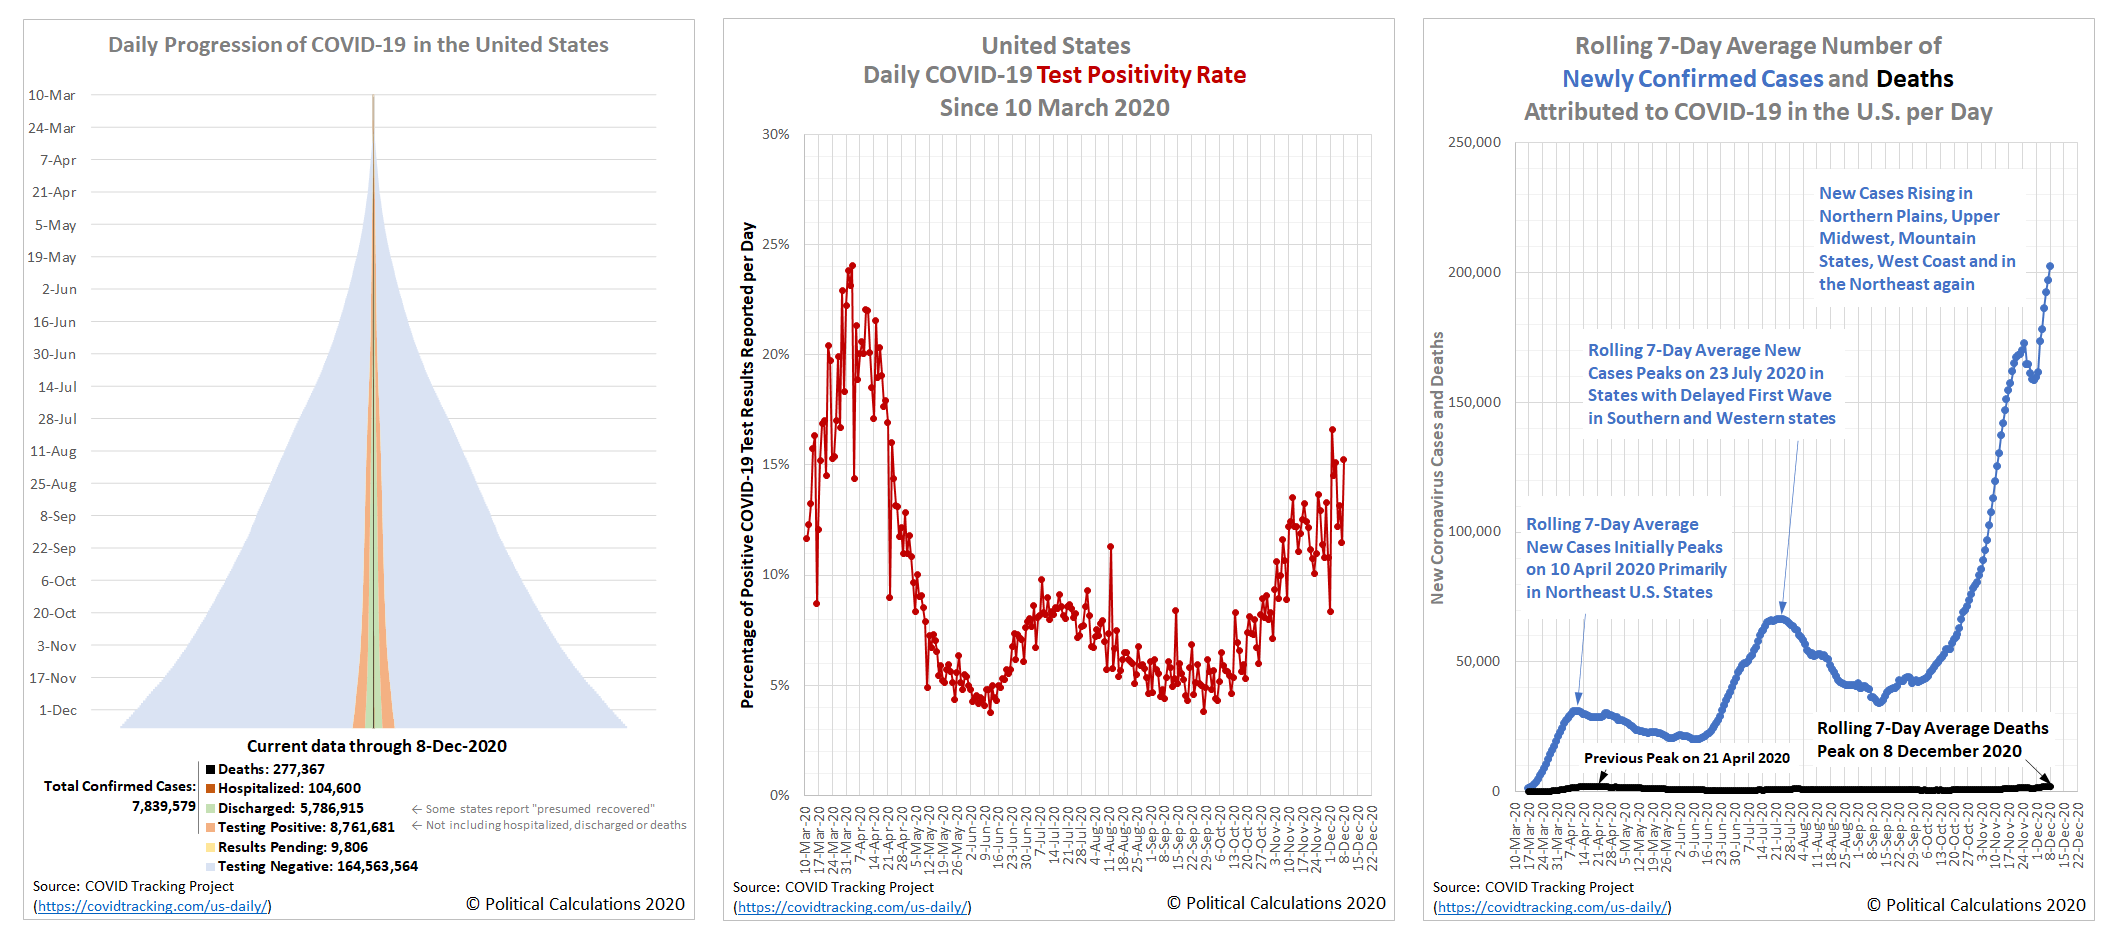 Daily Progression of COVID-19, Daily Positivity Rate, and Rolling 7-Day Averages of Newly Confirmed Cases and Deaths in the U.S., 10 March 2020 - 8 December 2020